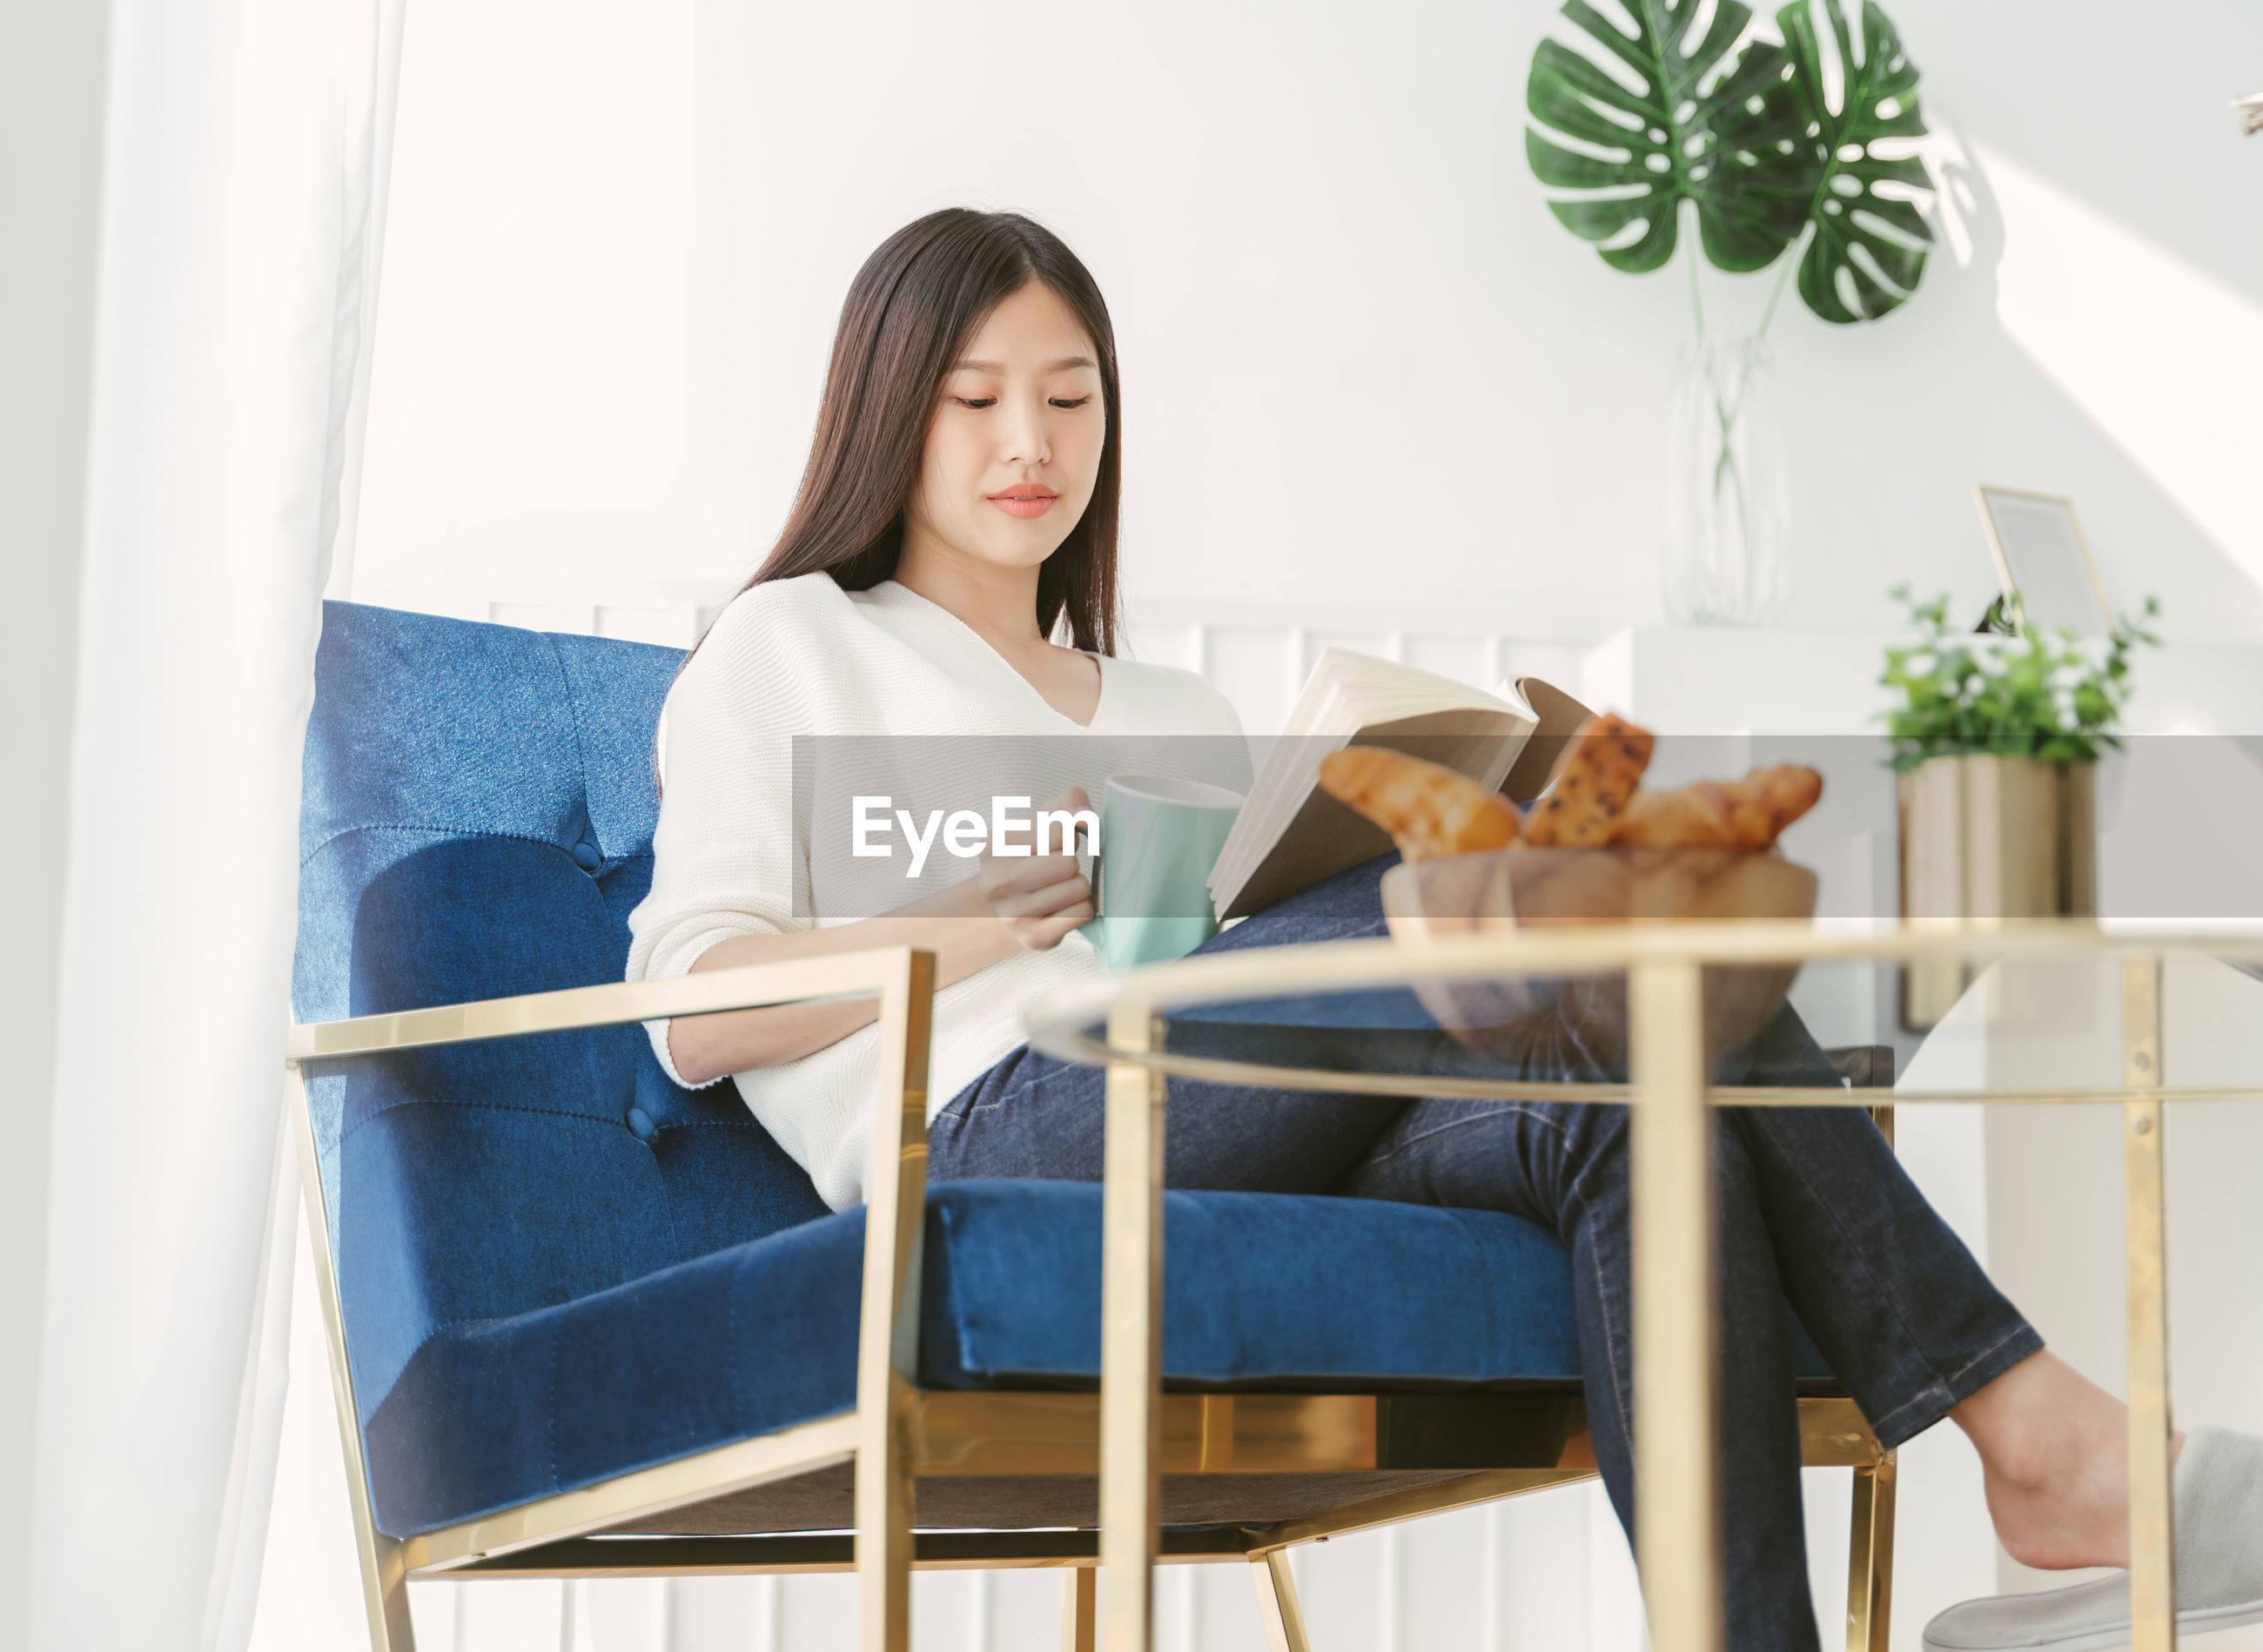 Woman reading book while sitting on chair by bread and coffee cup